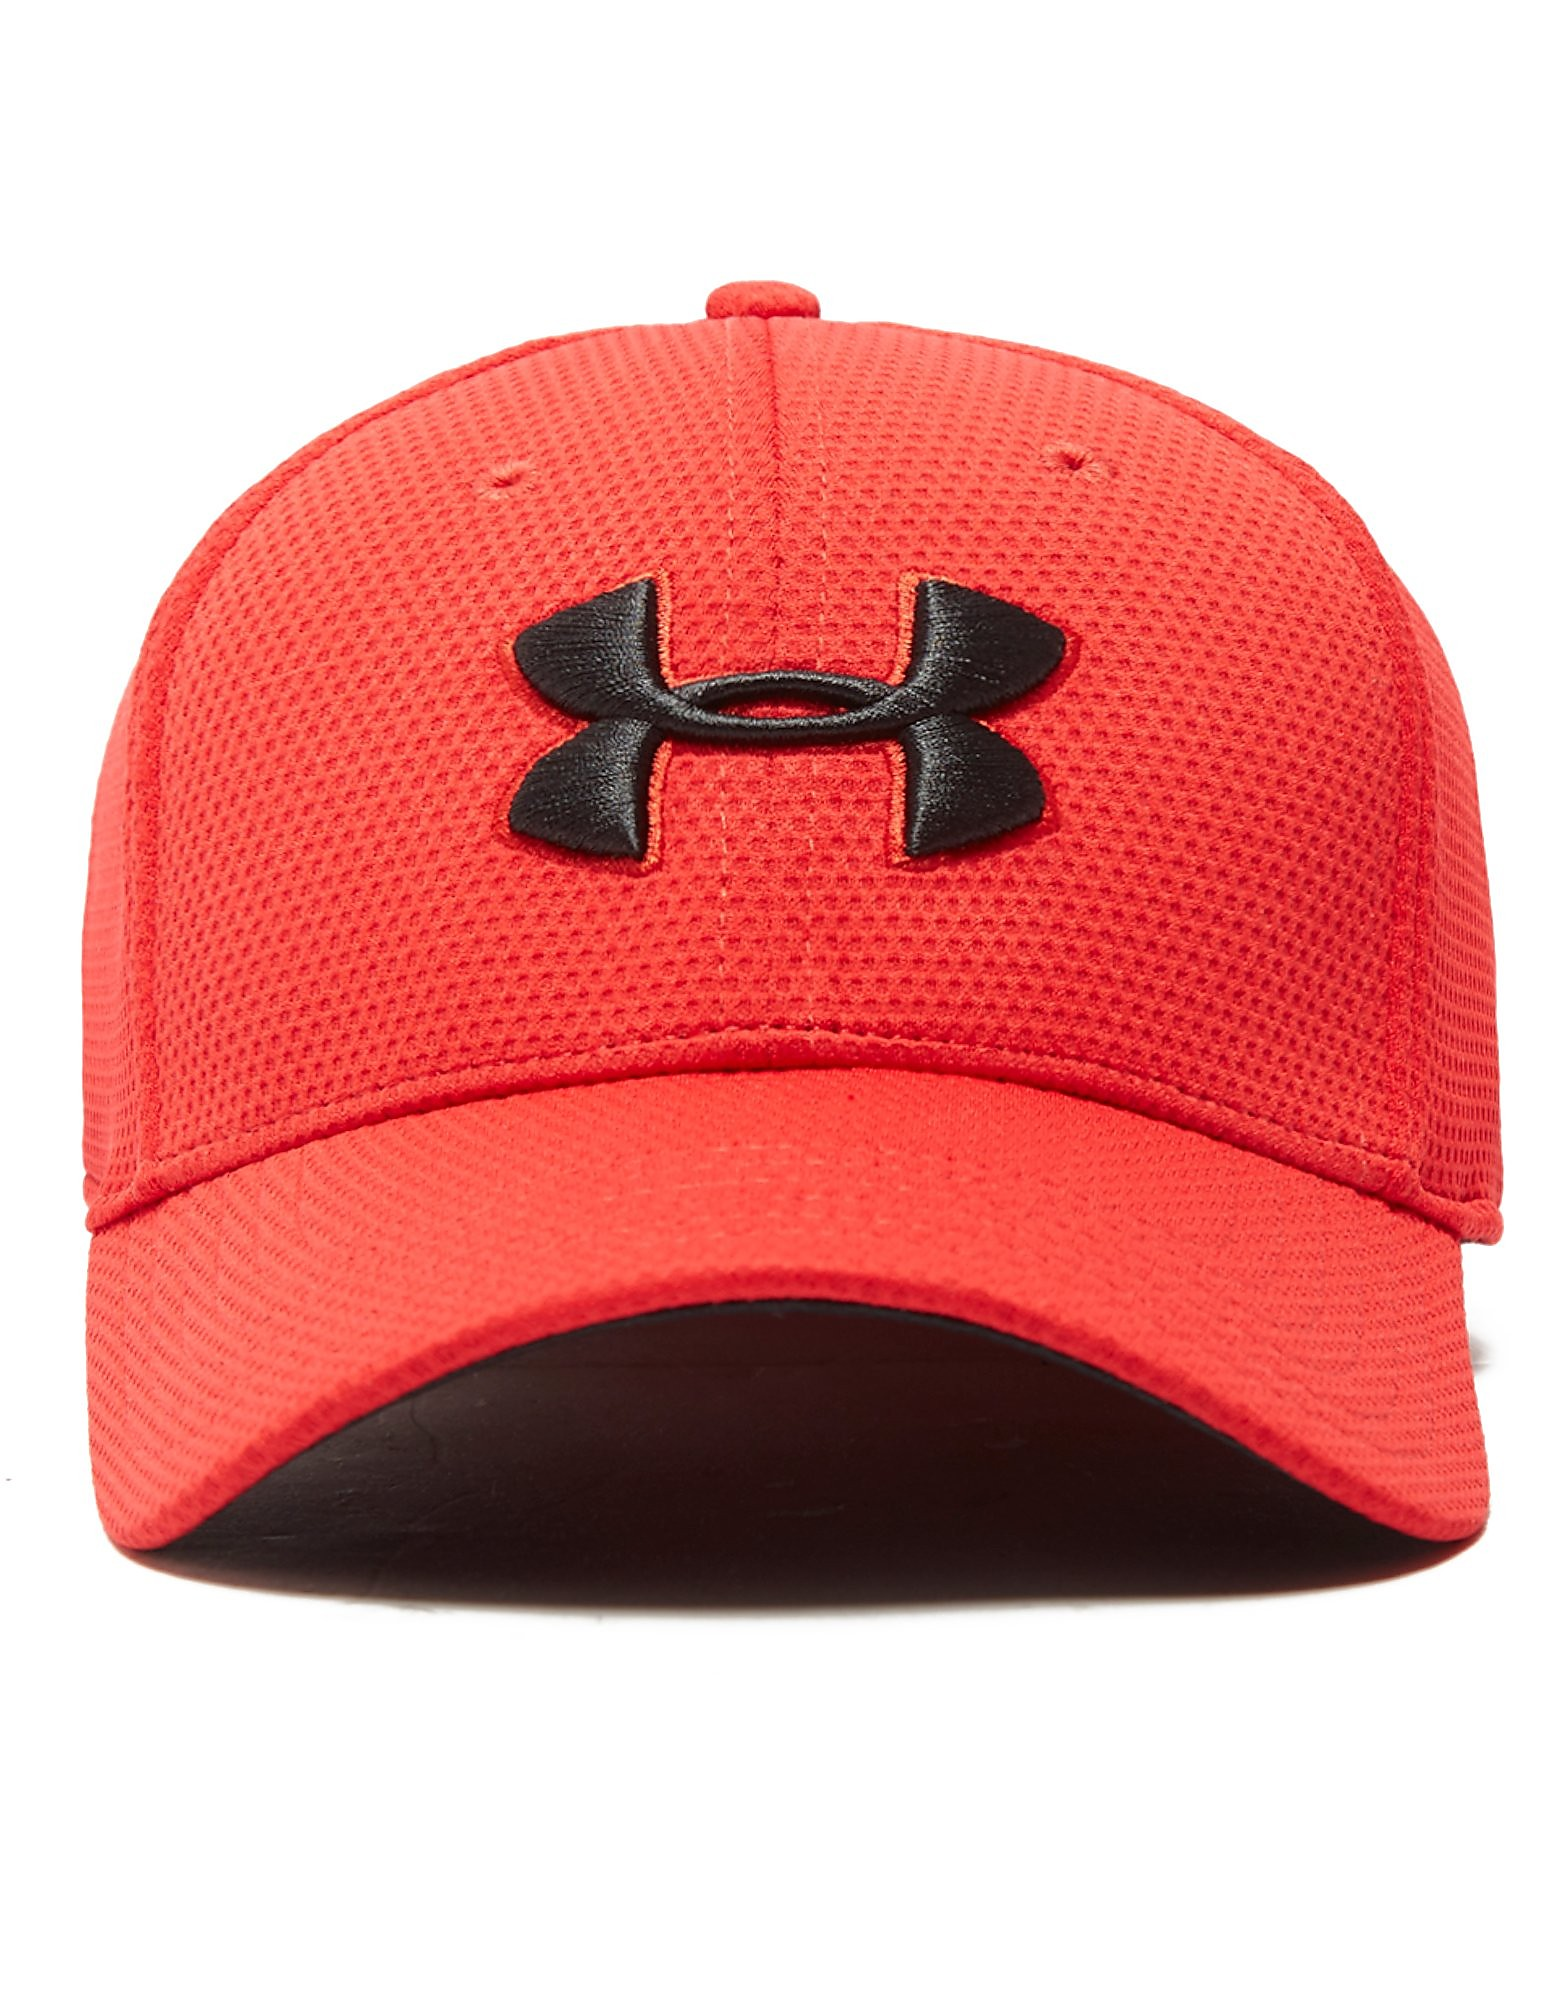 Under Armour gorra Blitzing 2